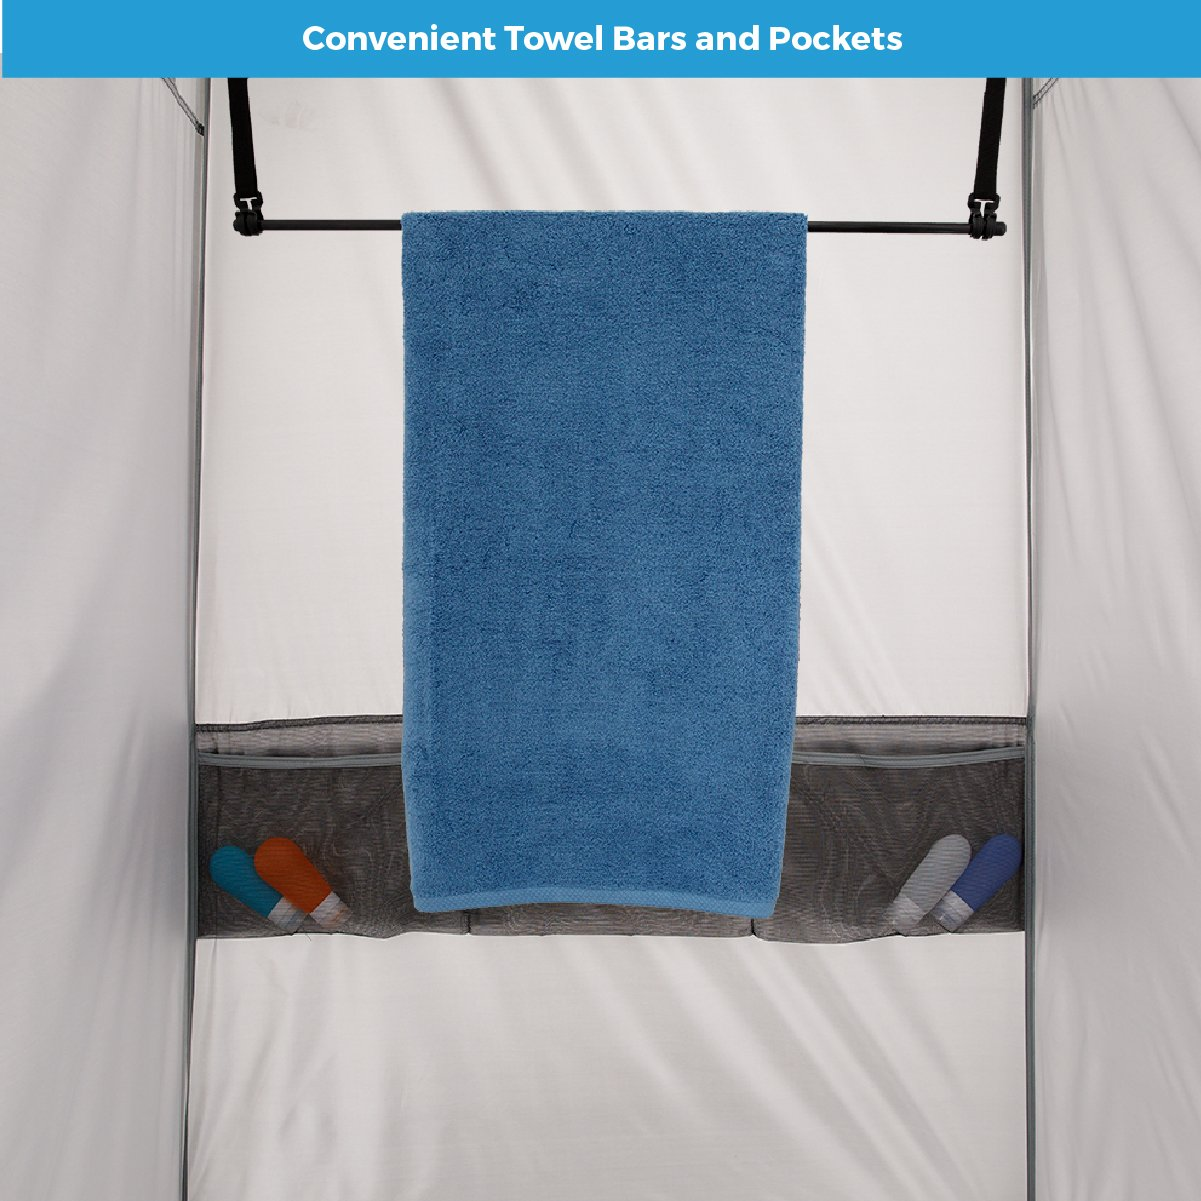 Amazon.com : CORE Instant Shower Tent with Changing Room : Sports ...